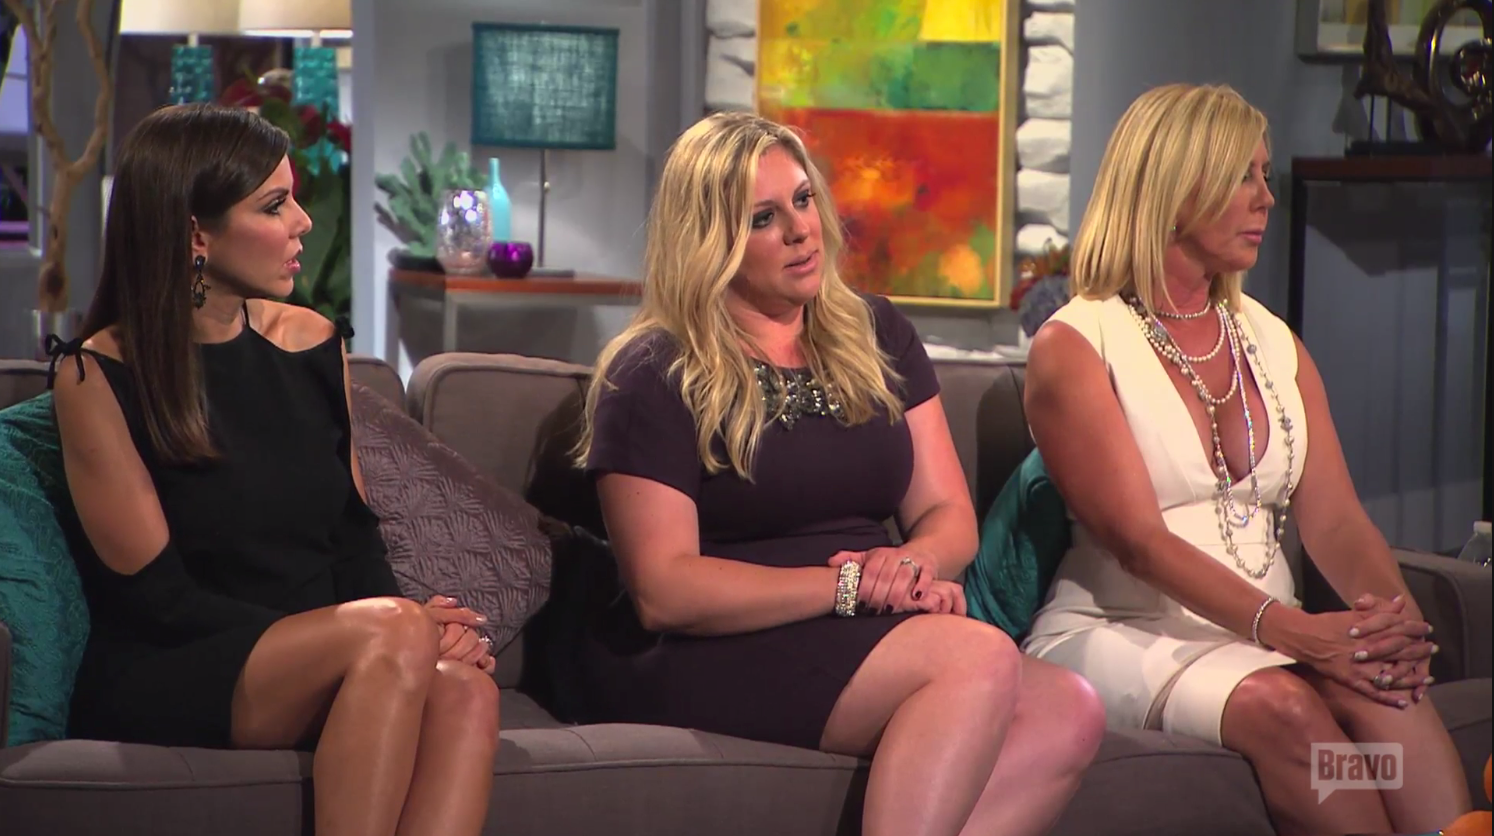 vicki-heather-rhoc-reunion-fabricating-story